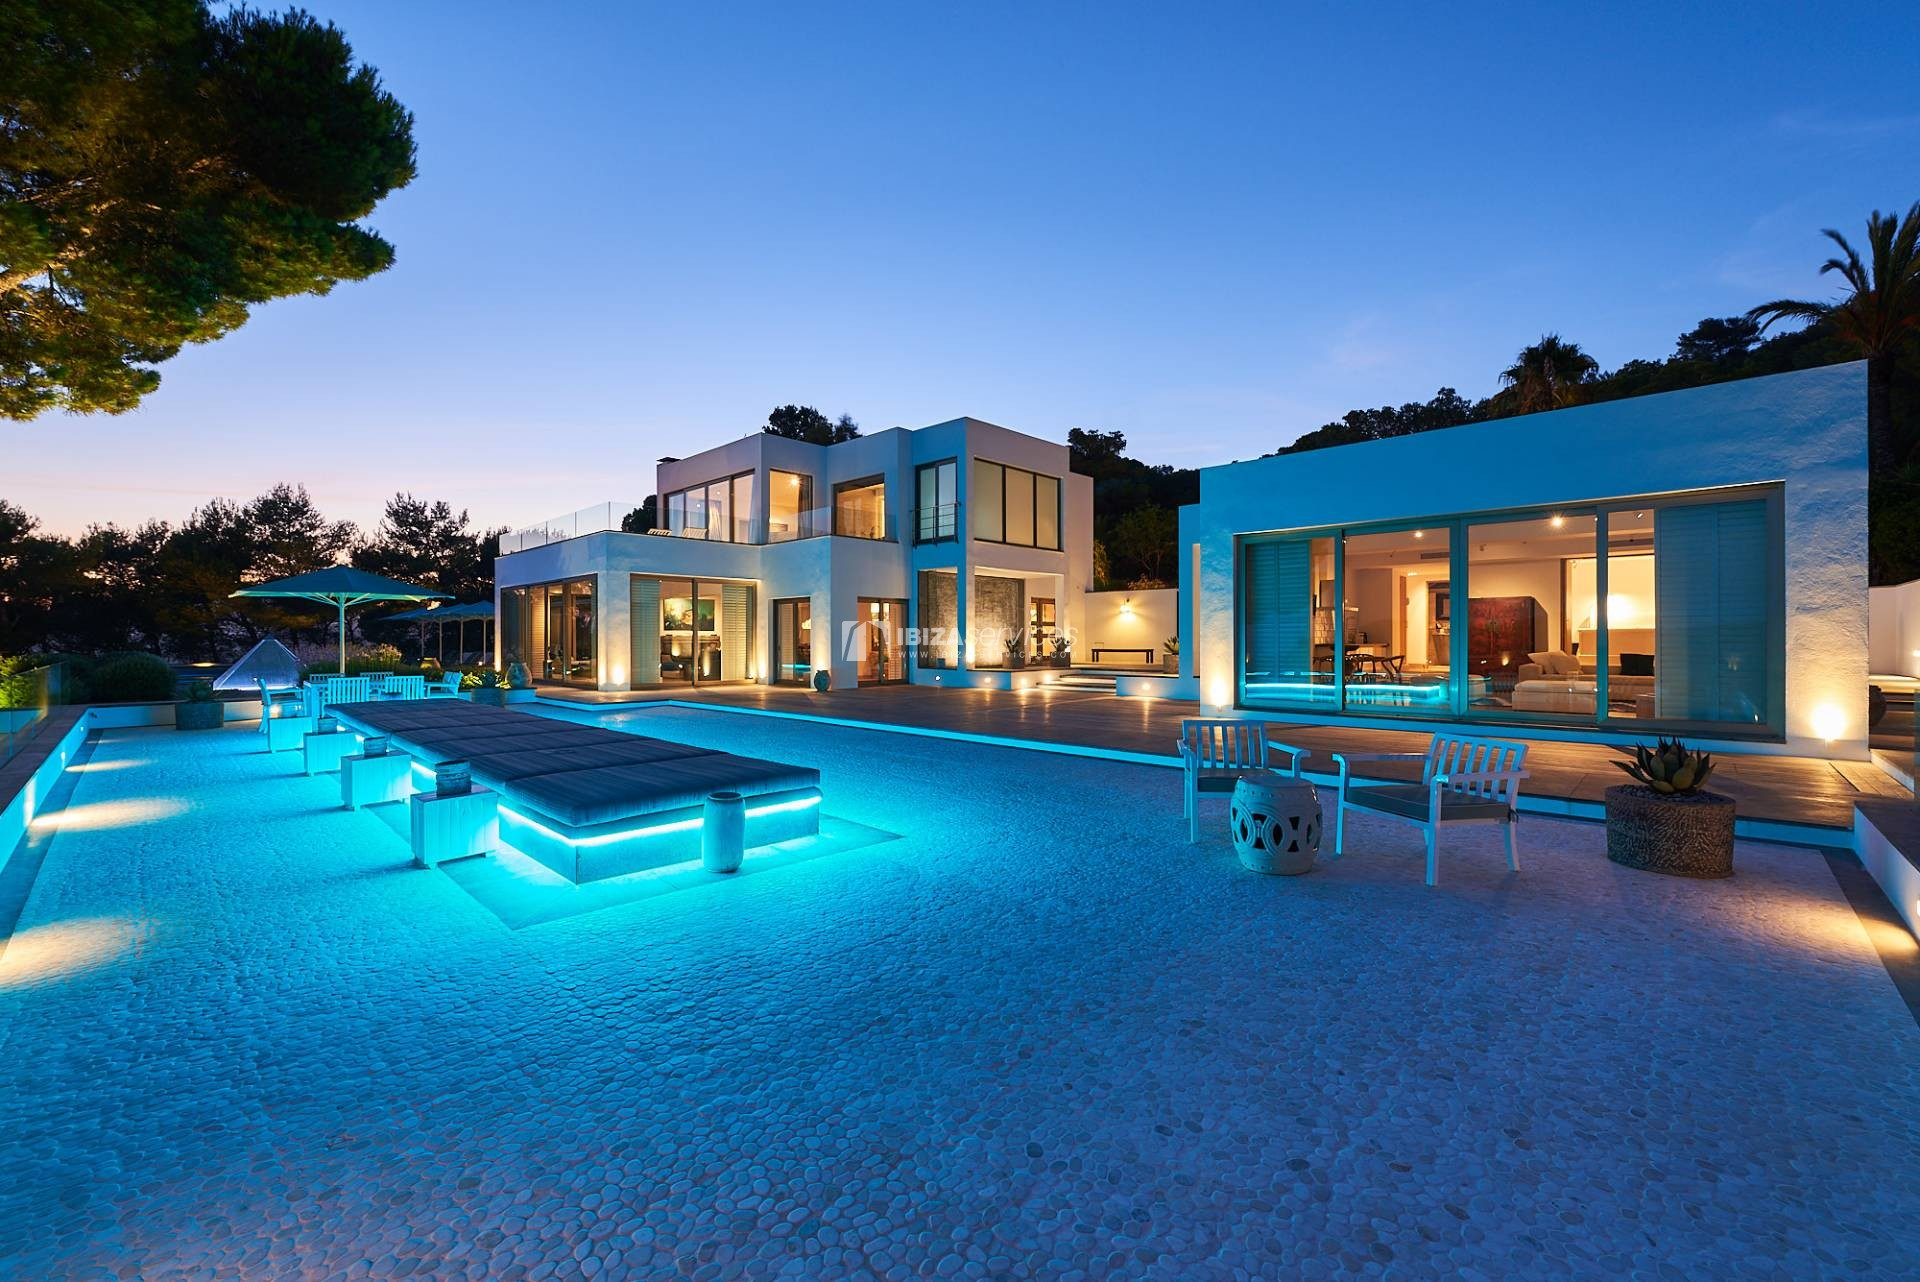 6 bedroom super luxury Ibiza villa situated in Km5